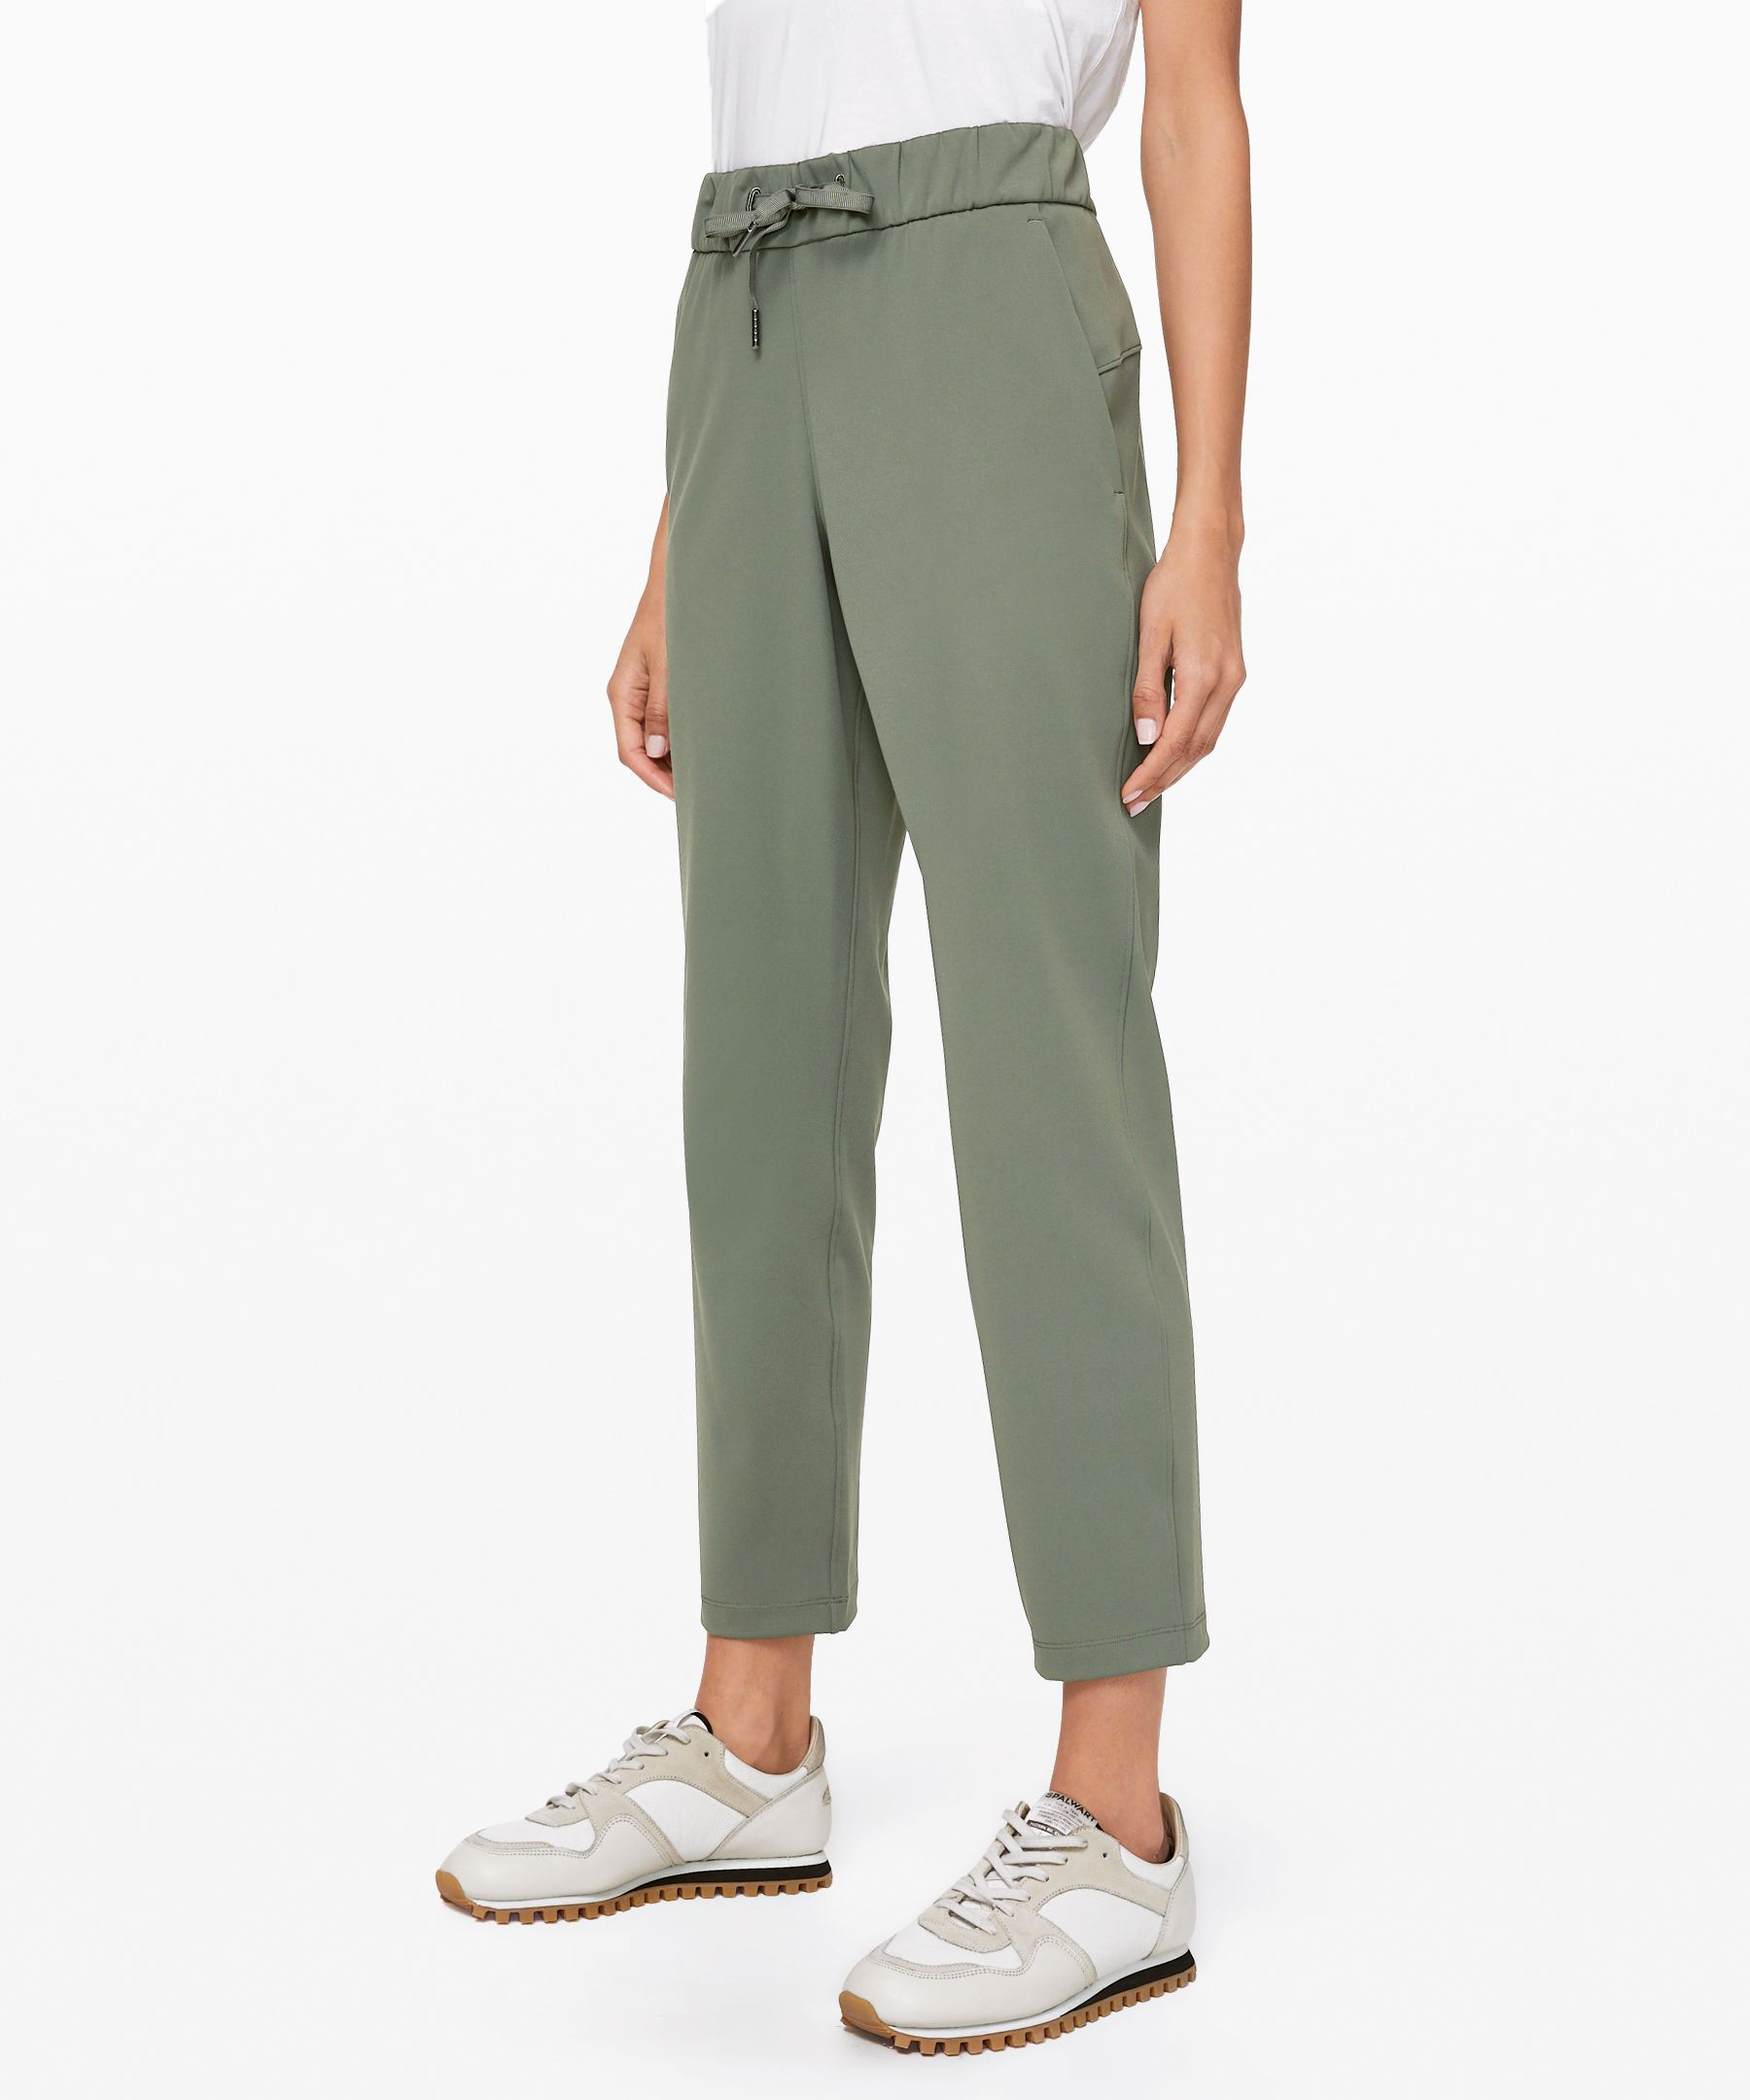 ee4be612f5539 On the Fly 7/8 Pant | Women's Pants | lululemon athletica